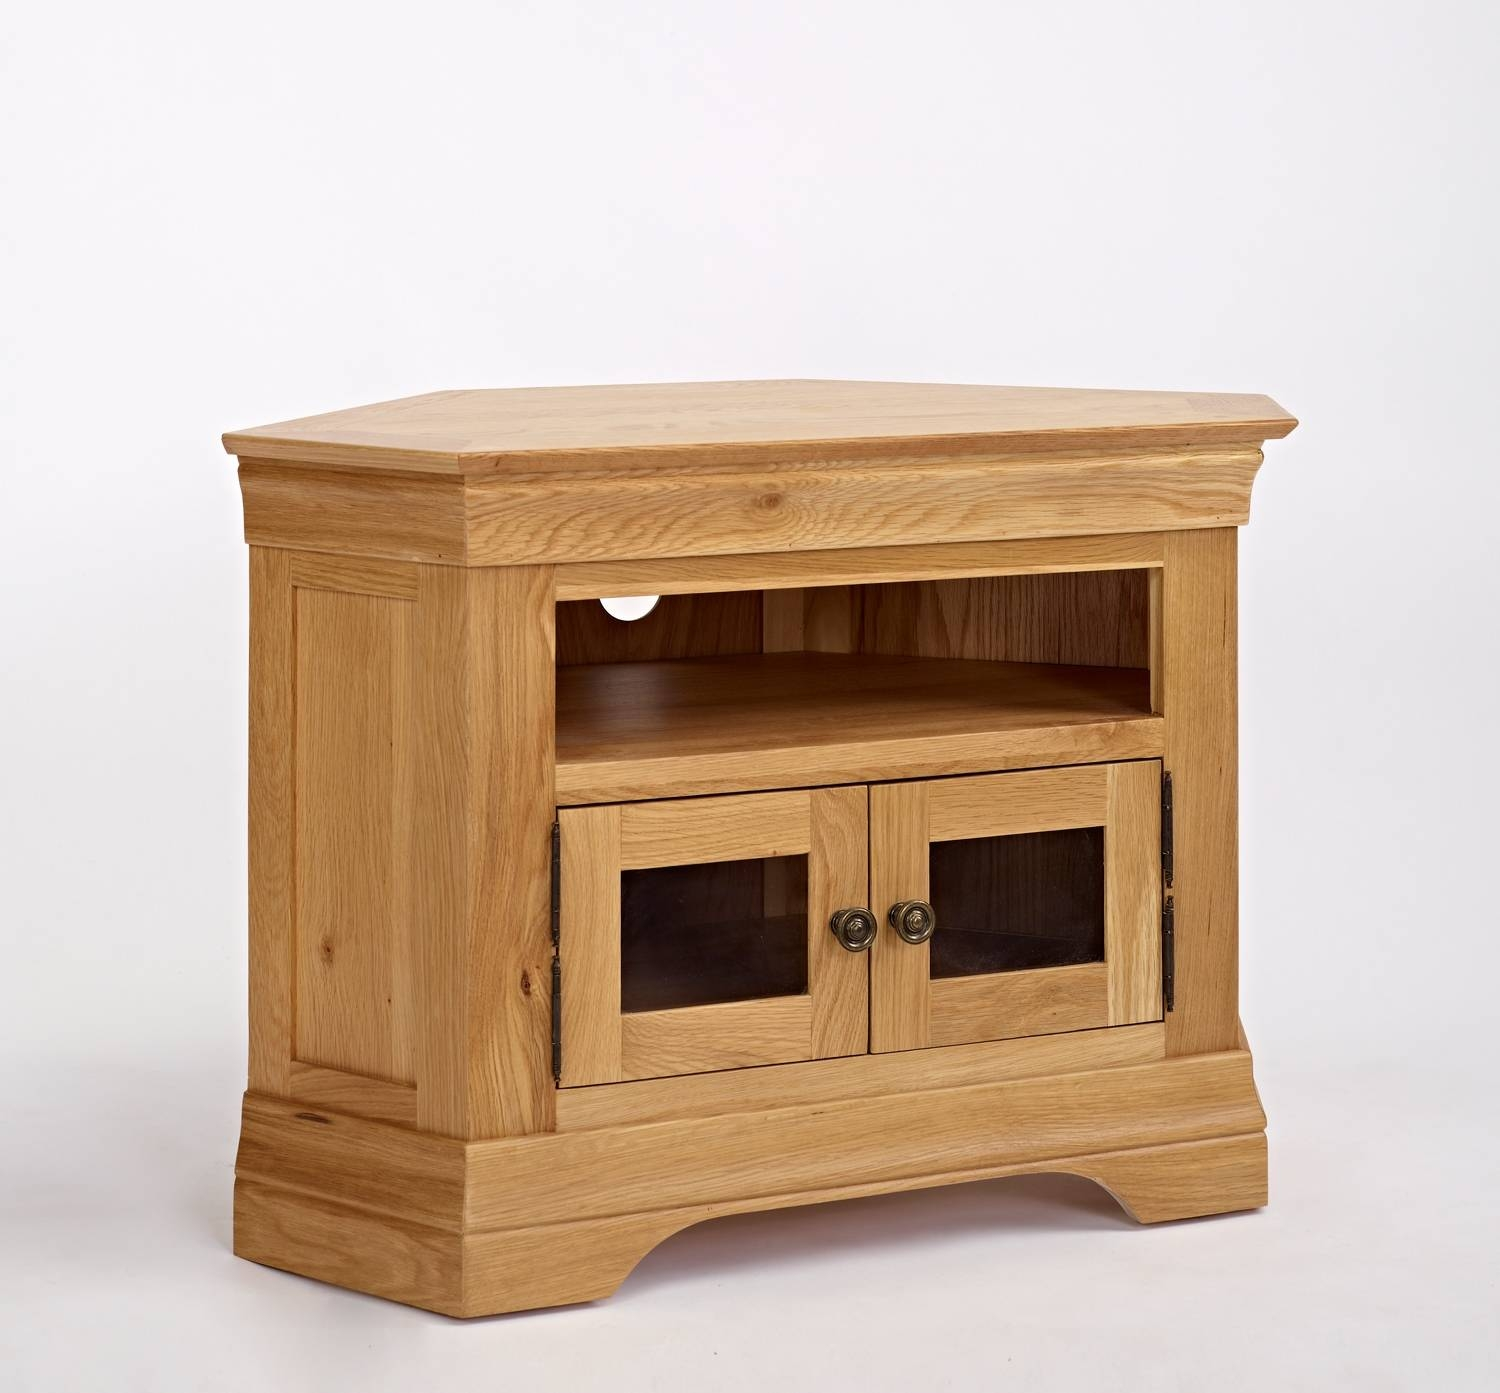 French Modern Oak Corner Tv Unit | Hampshire Furniture Within Small Oak Corner Tv Stands (View 5 of 15)